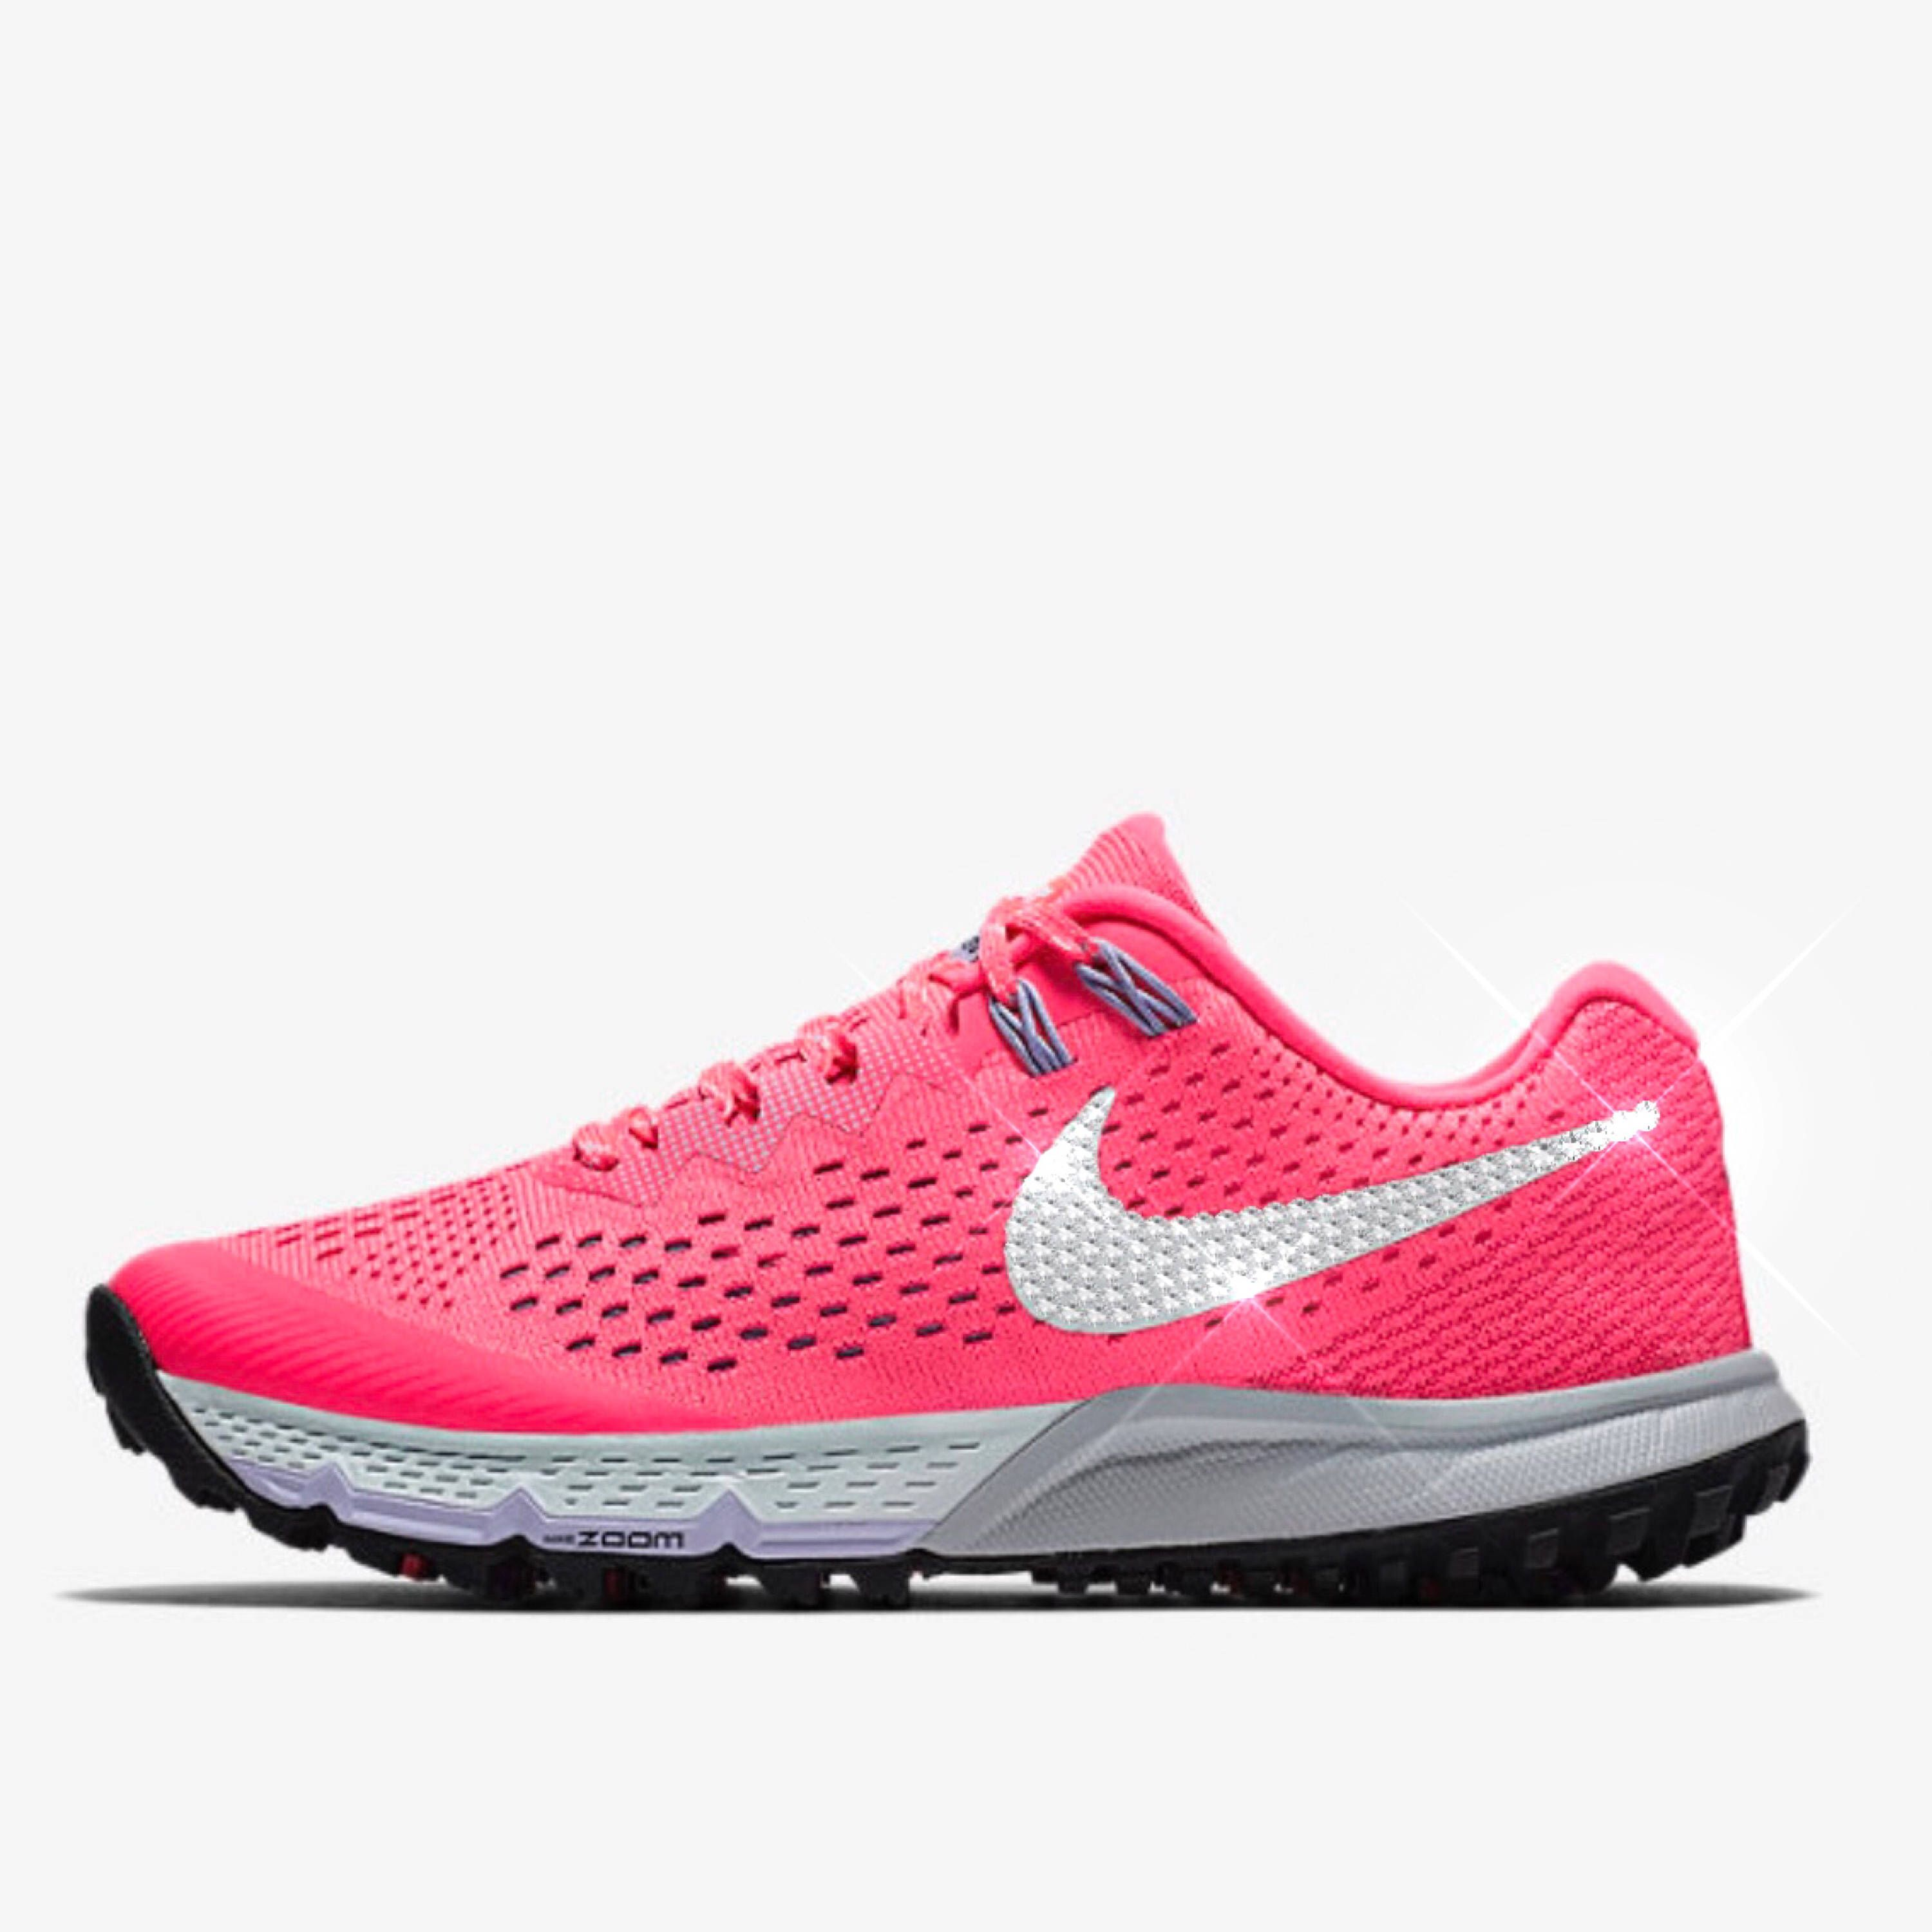 bling nikes- bling nike shoes- sparkly pink nikes- hot pink crystal nikes-